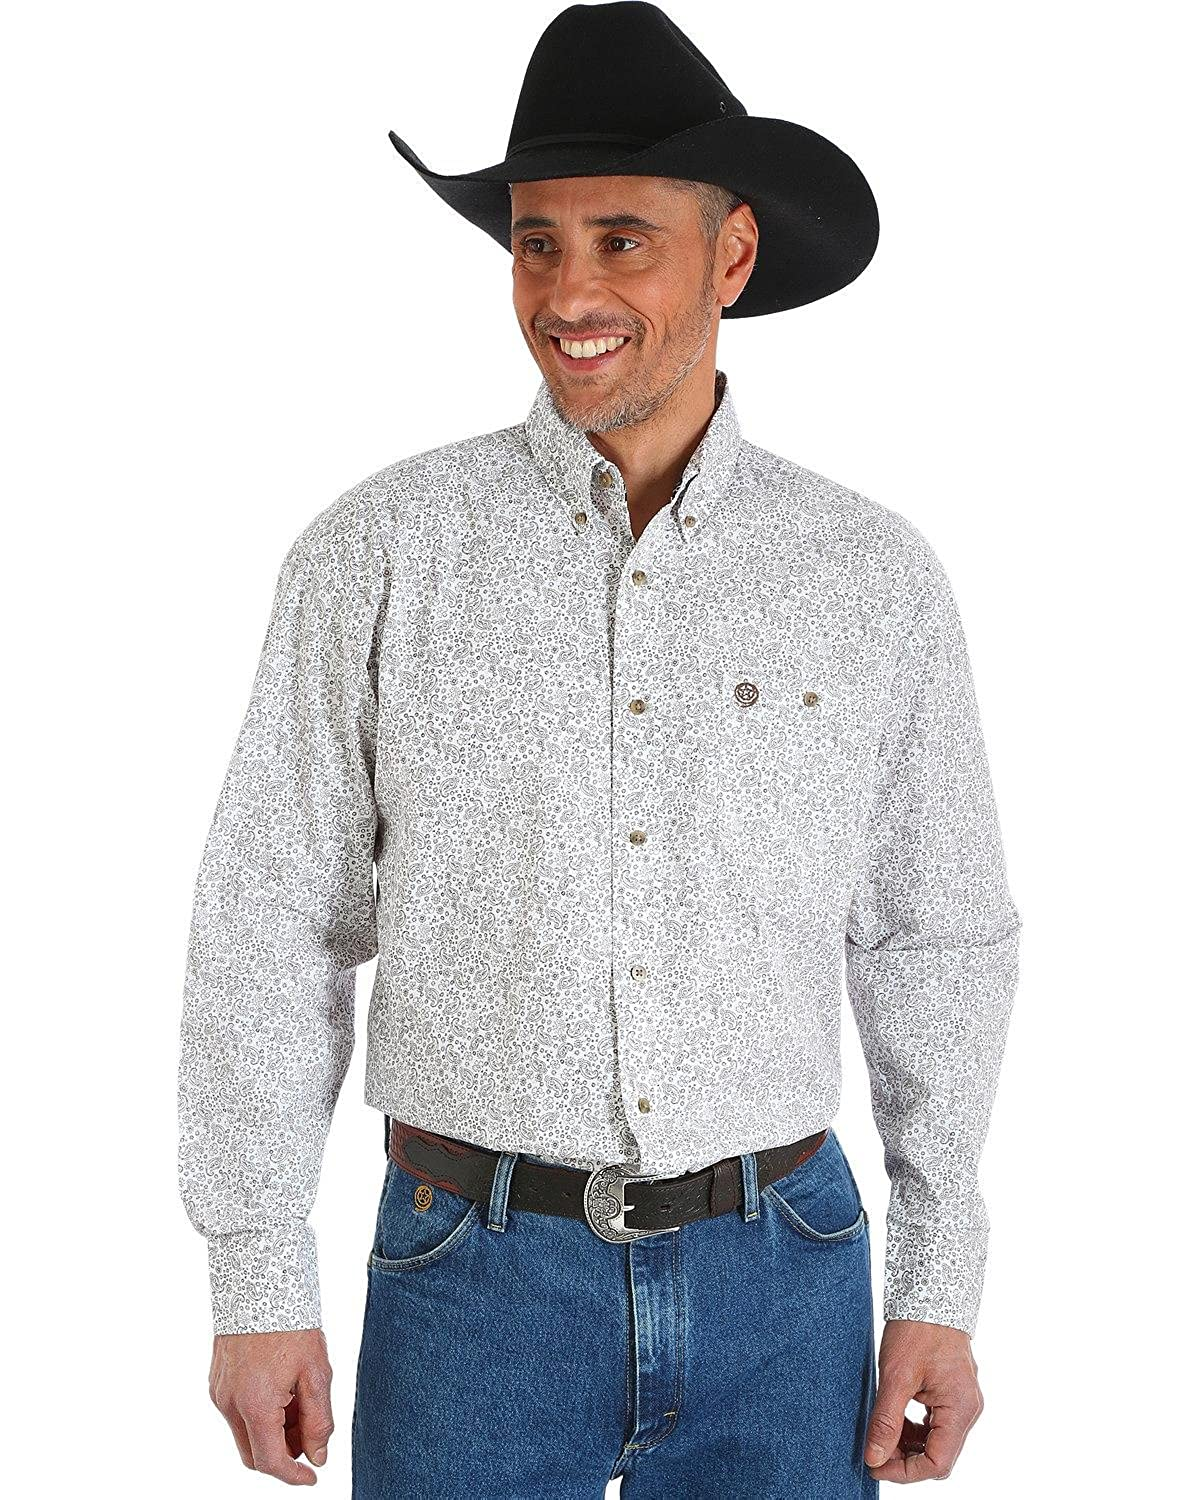 Wrangler Mens George Strait Chestnut Paisley Print Button Shirt Big and Tall Tan XX-Large Tall